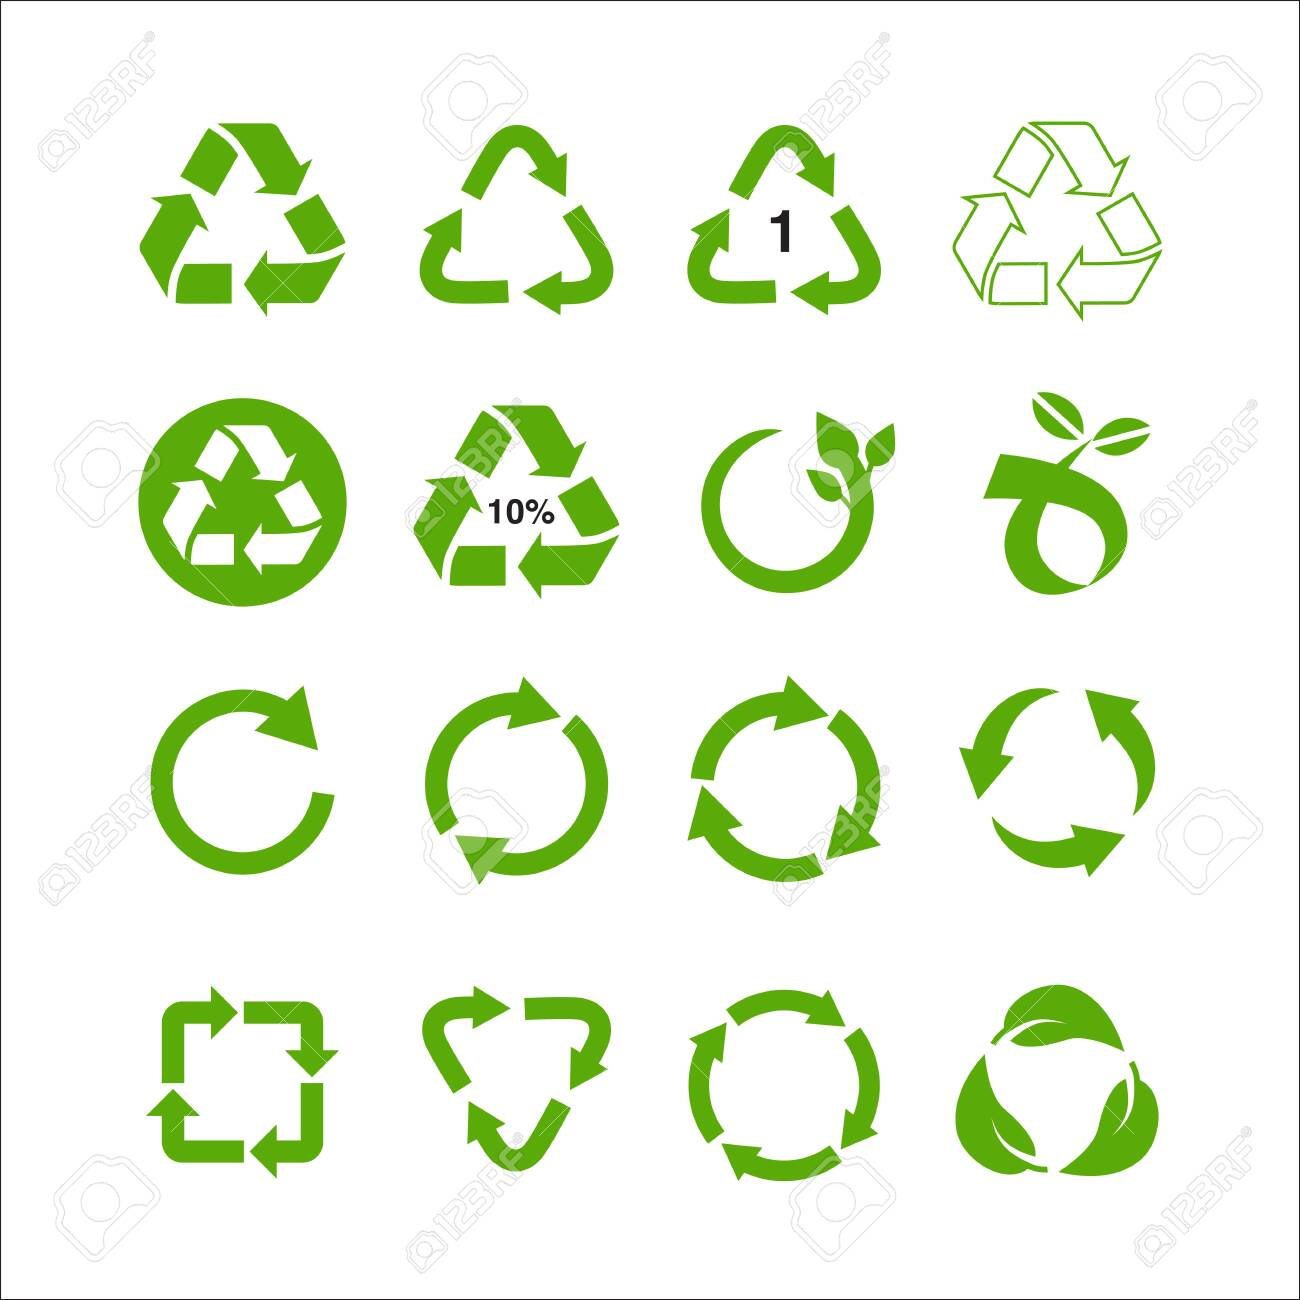 Set of recycle symbol vector illustration isolated on white background - 127964960